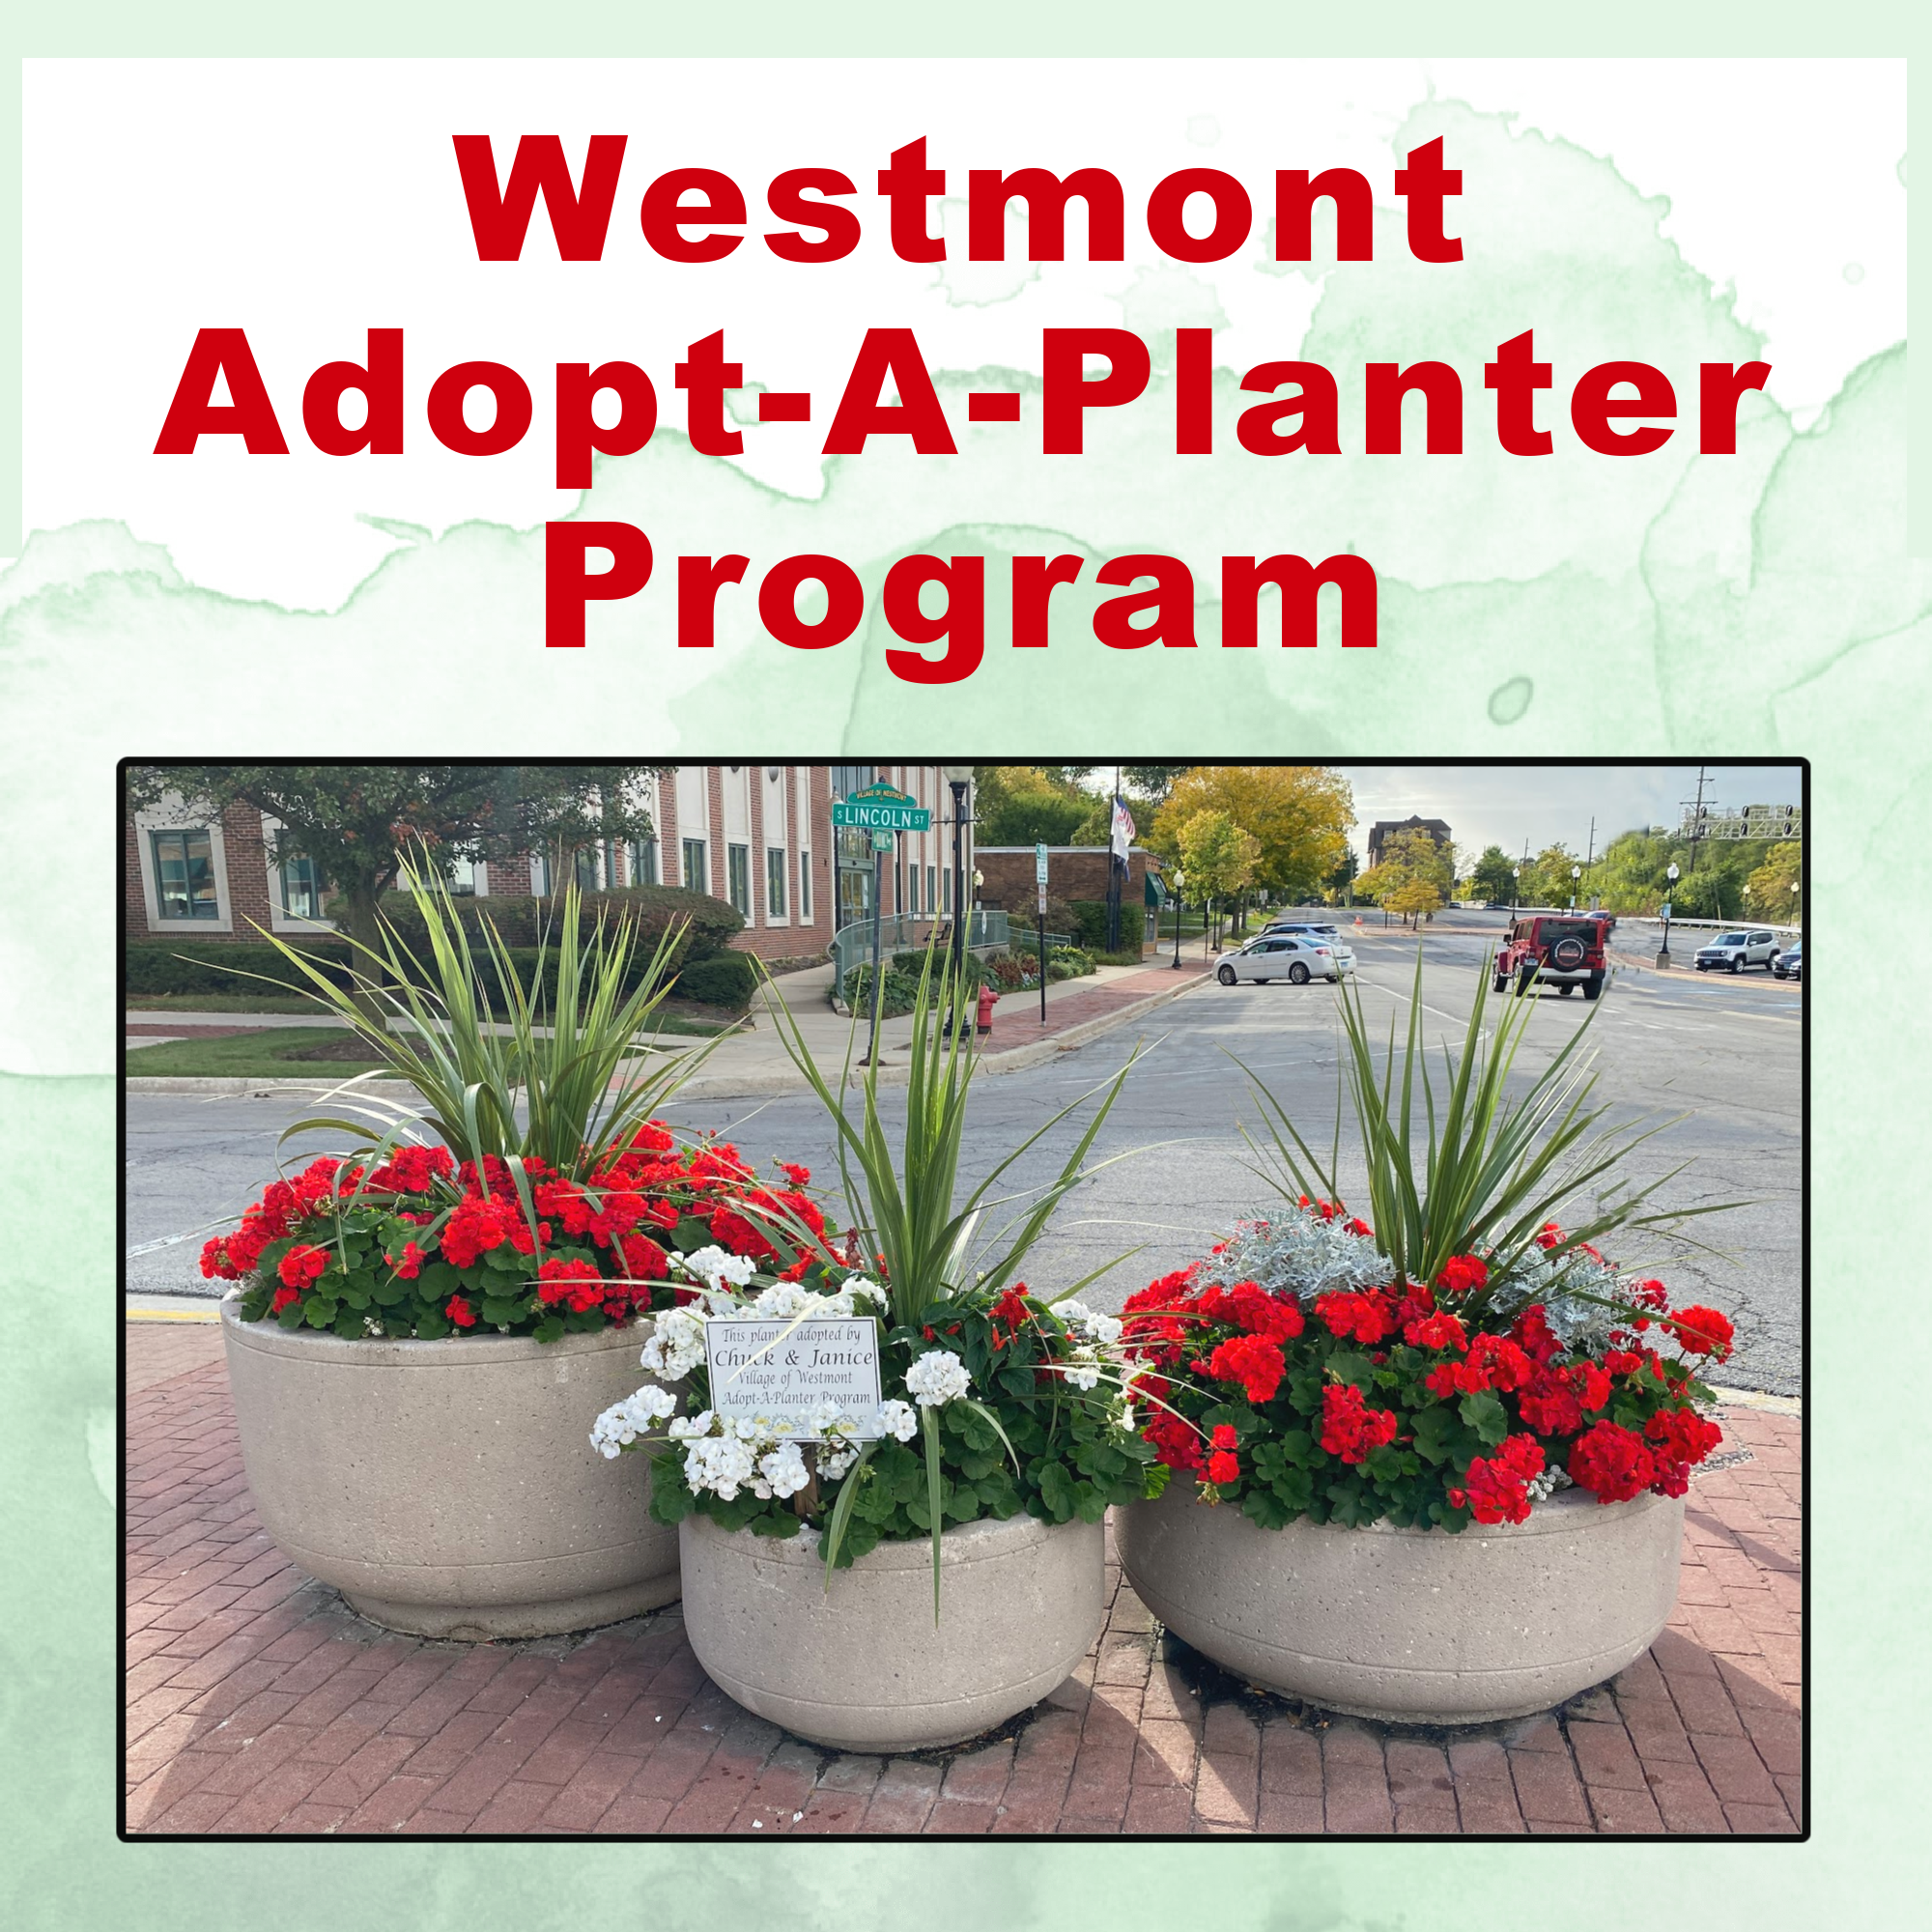 Adopt-A-Planter Graphic